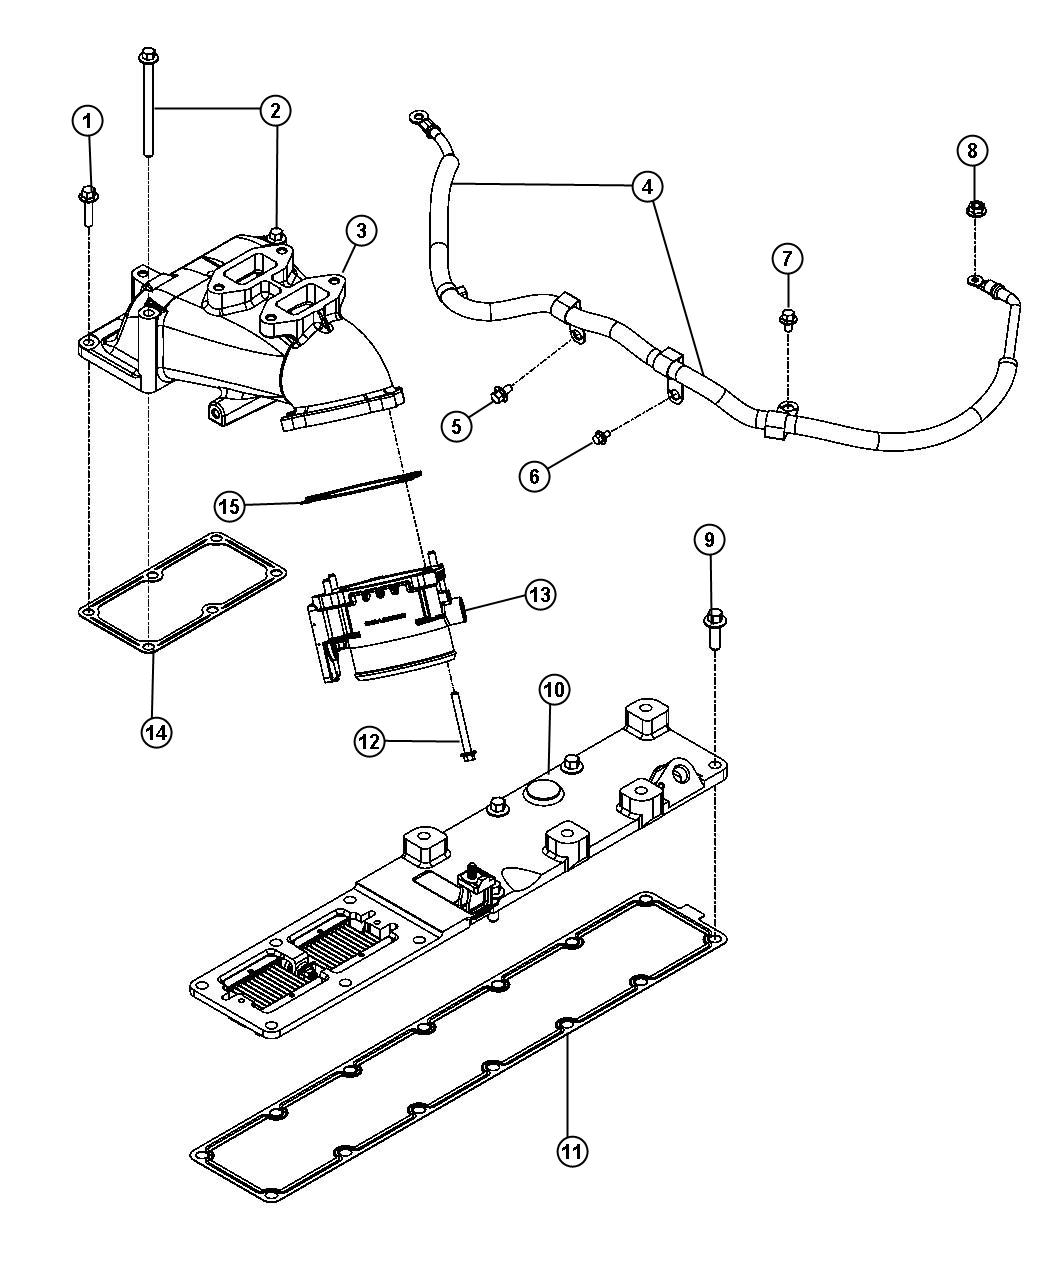 Dodge Ram 3500 Wiring. Air intake heater. [federal